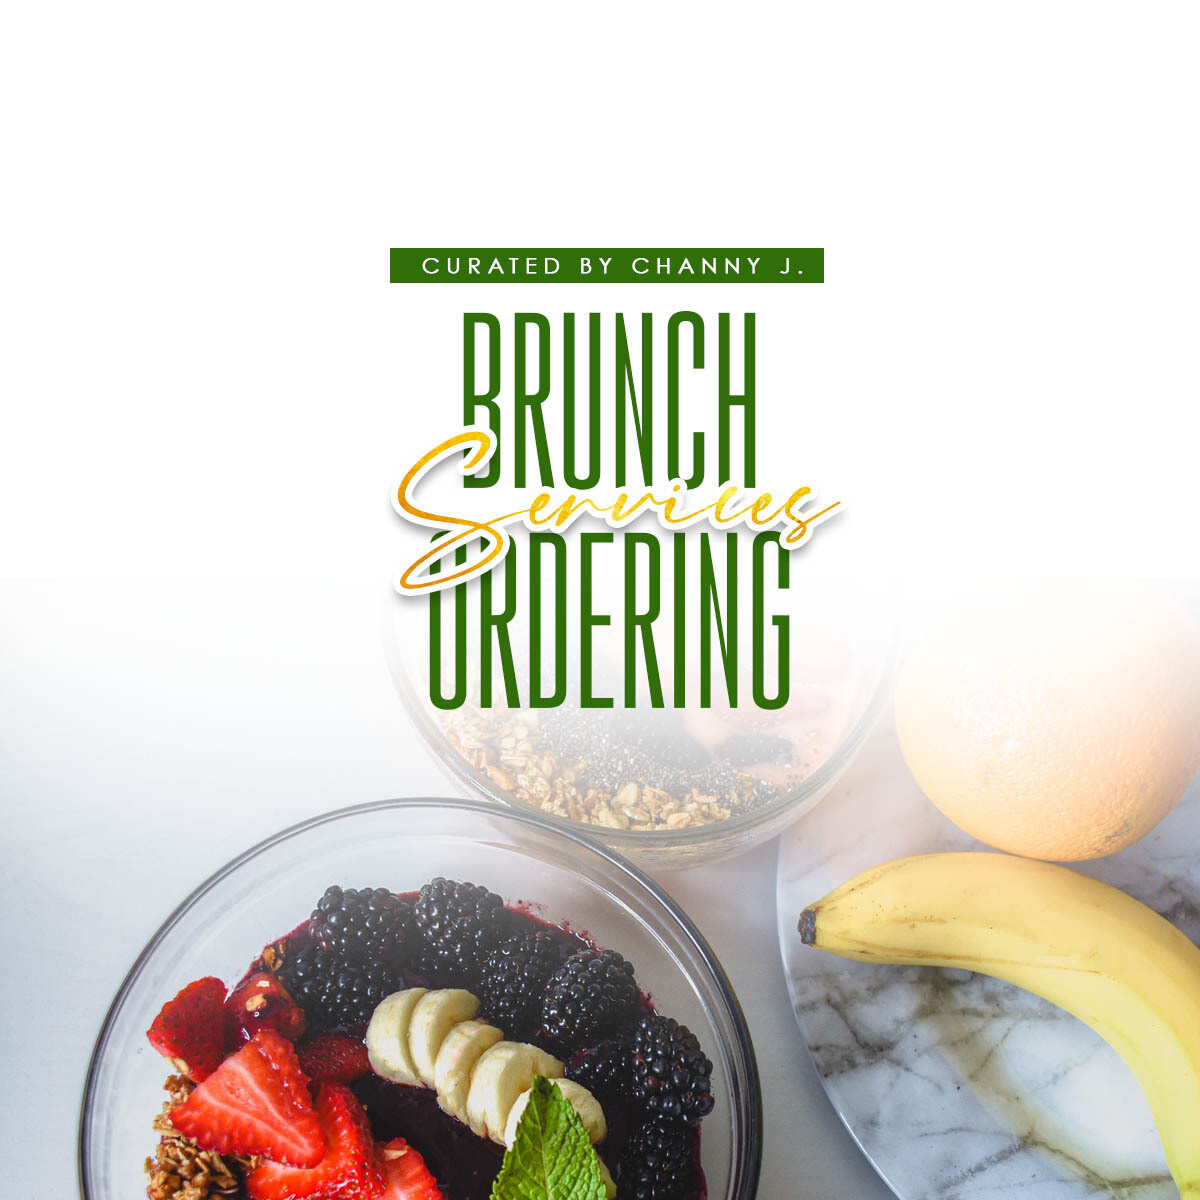 Brunch Catering Services